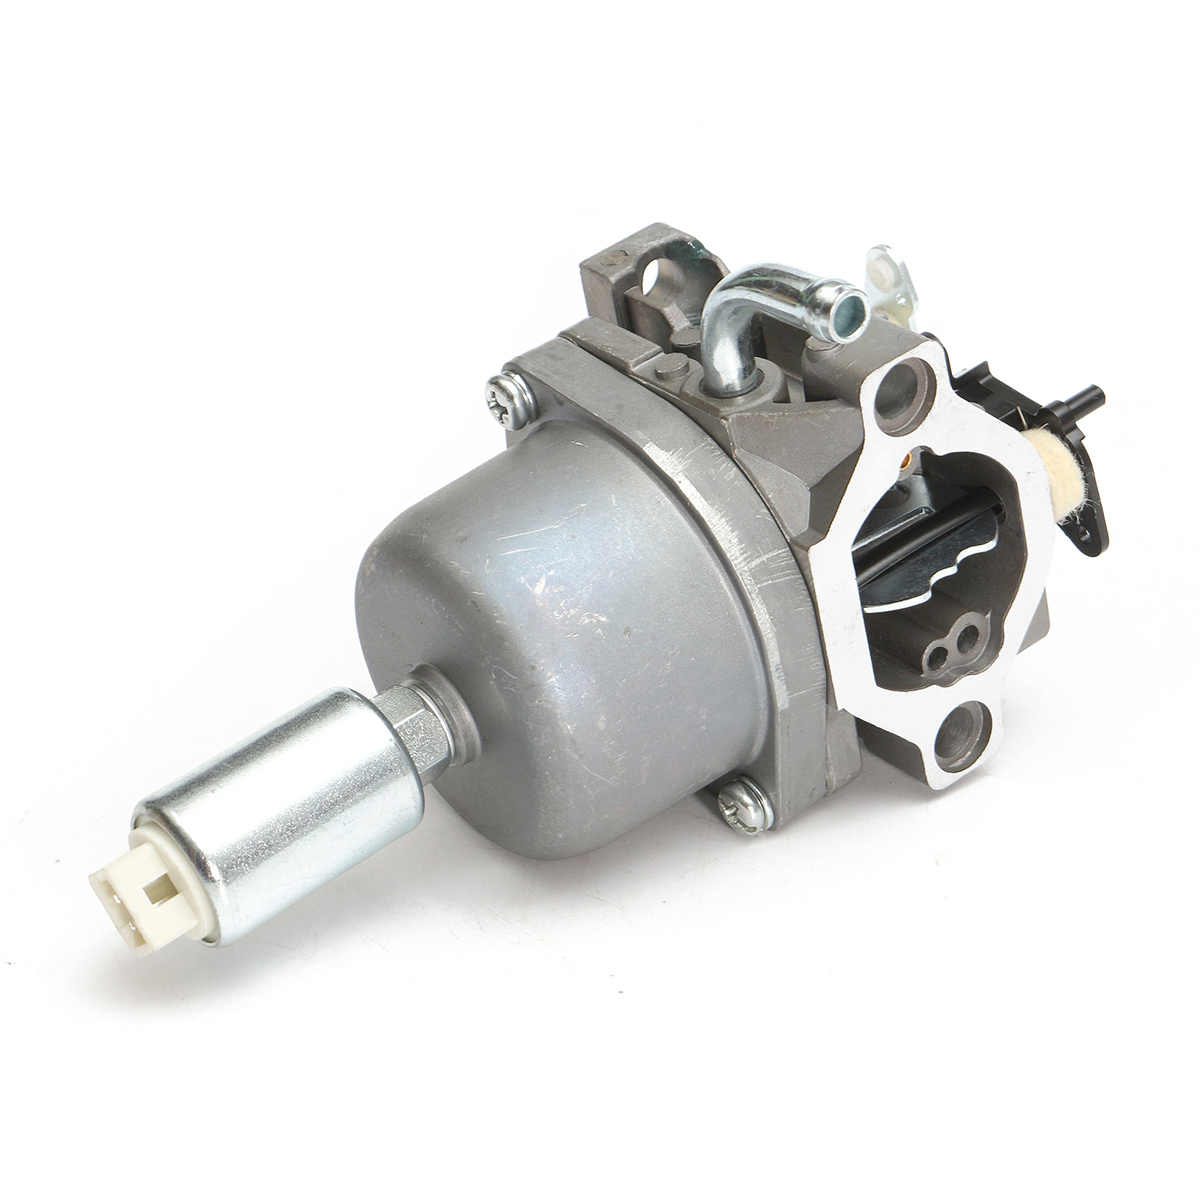 briggs and stratton 6 hp carburetor diagram carbohydrate structure accessories for intek 796109